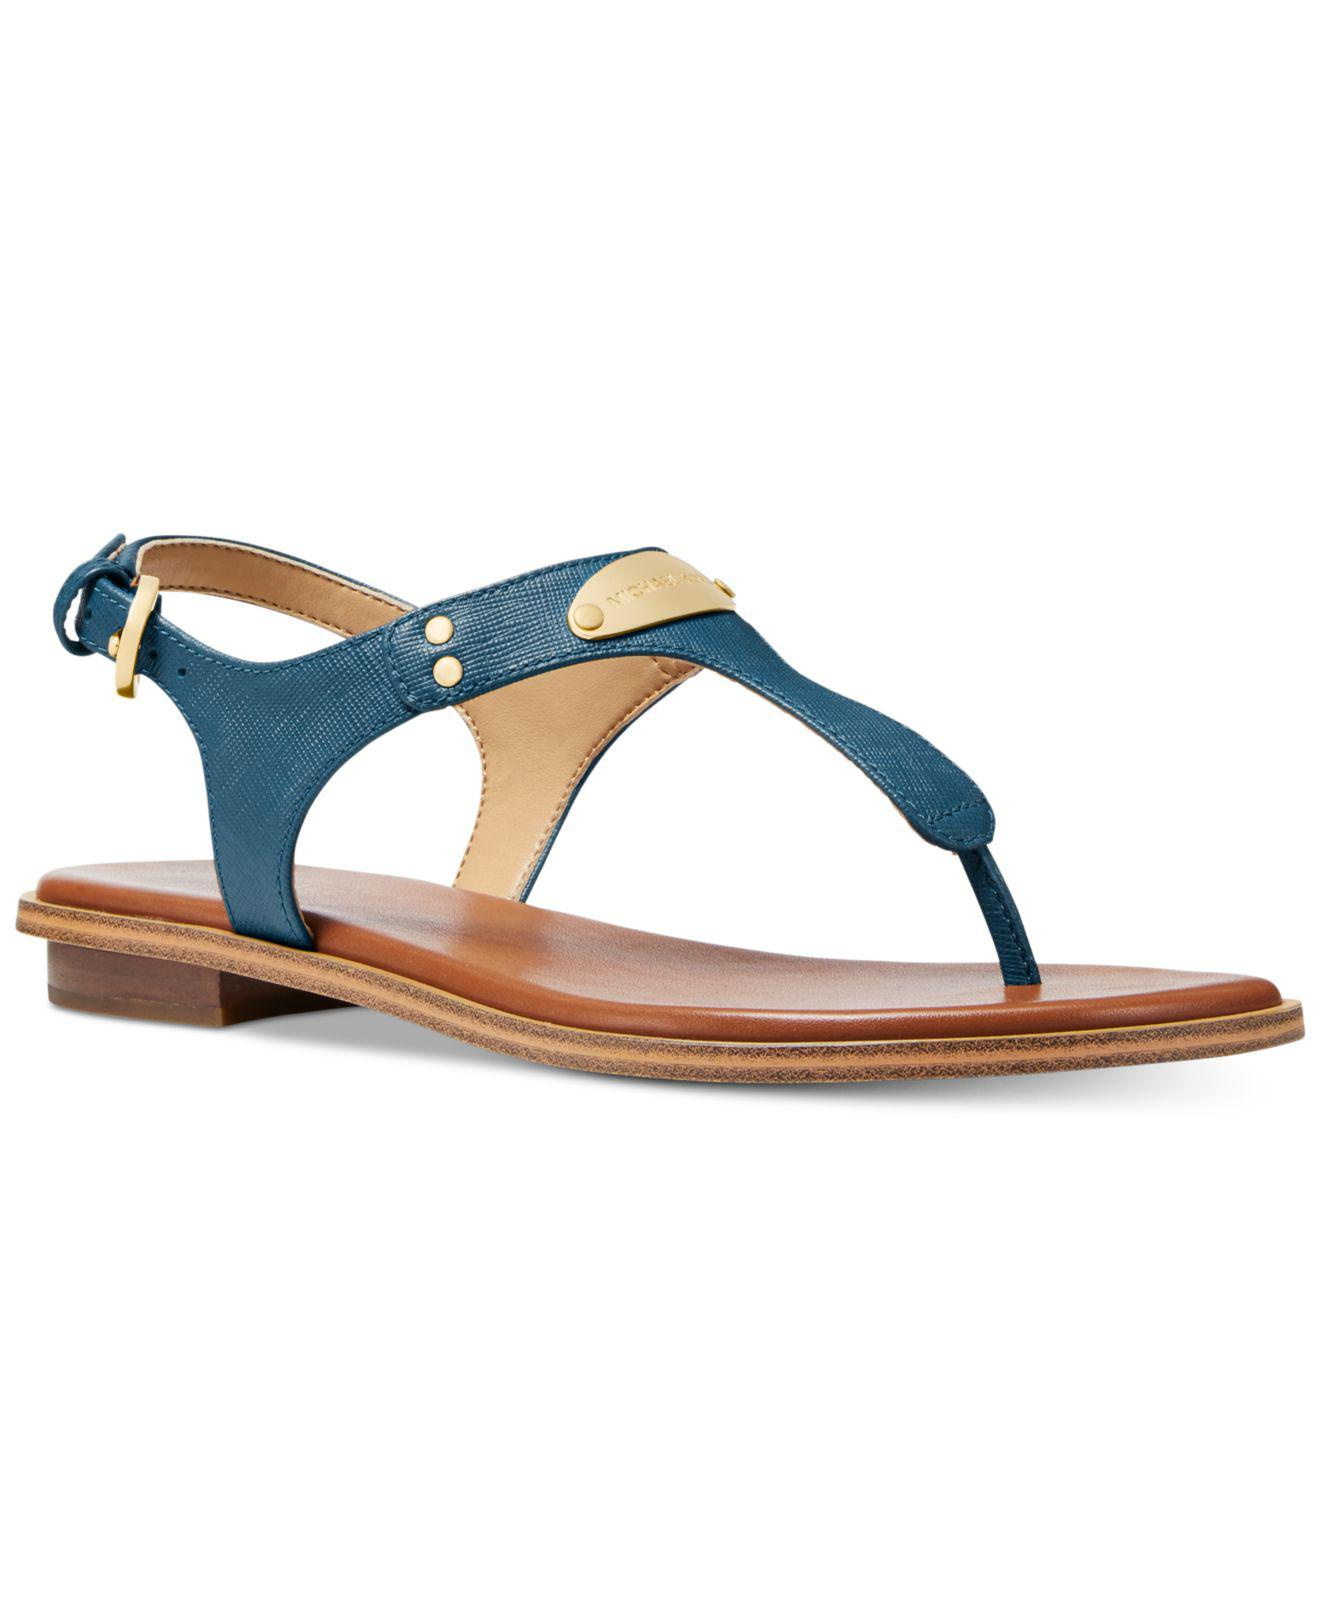 2829d5f3a623 Michael Kors Mk Plate Flat Thong Sandals in Blue - Save 55% - Lyst